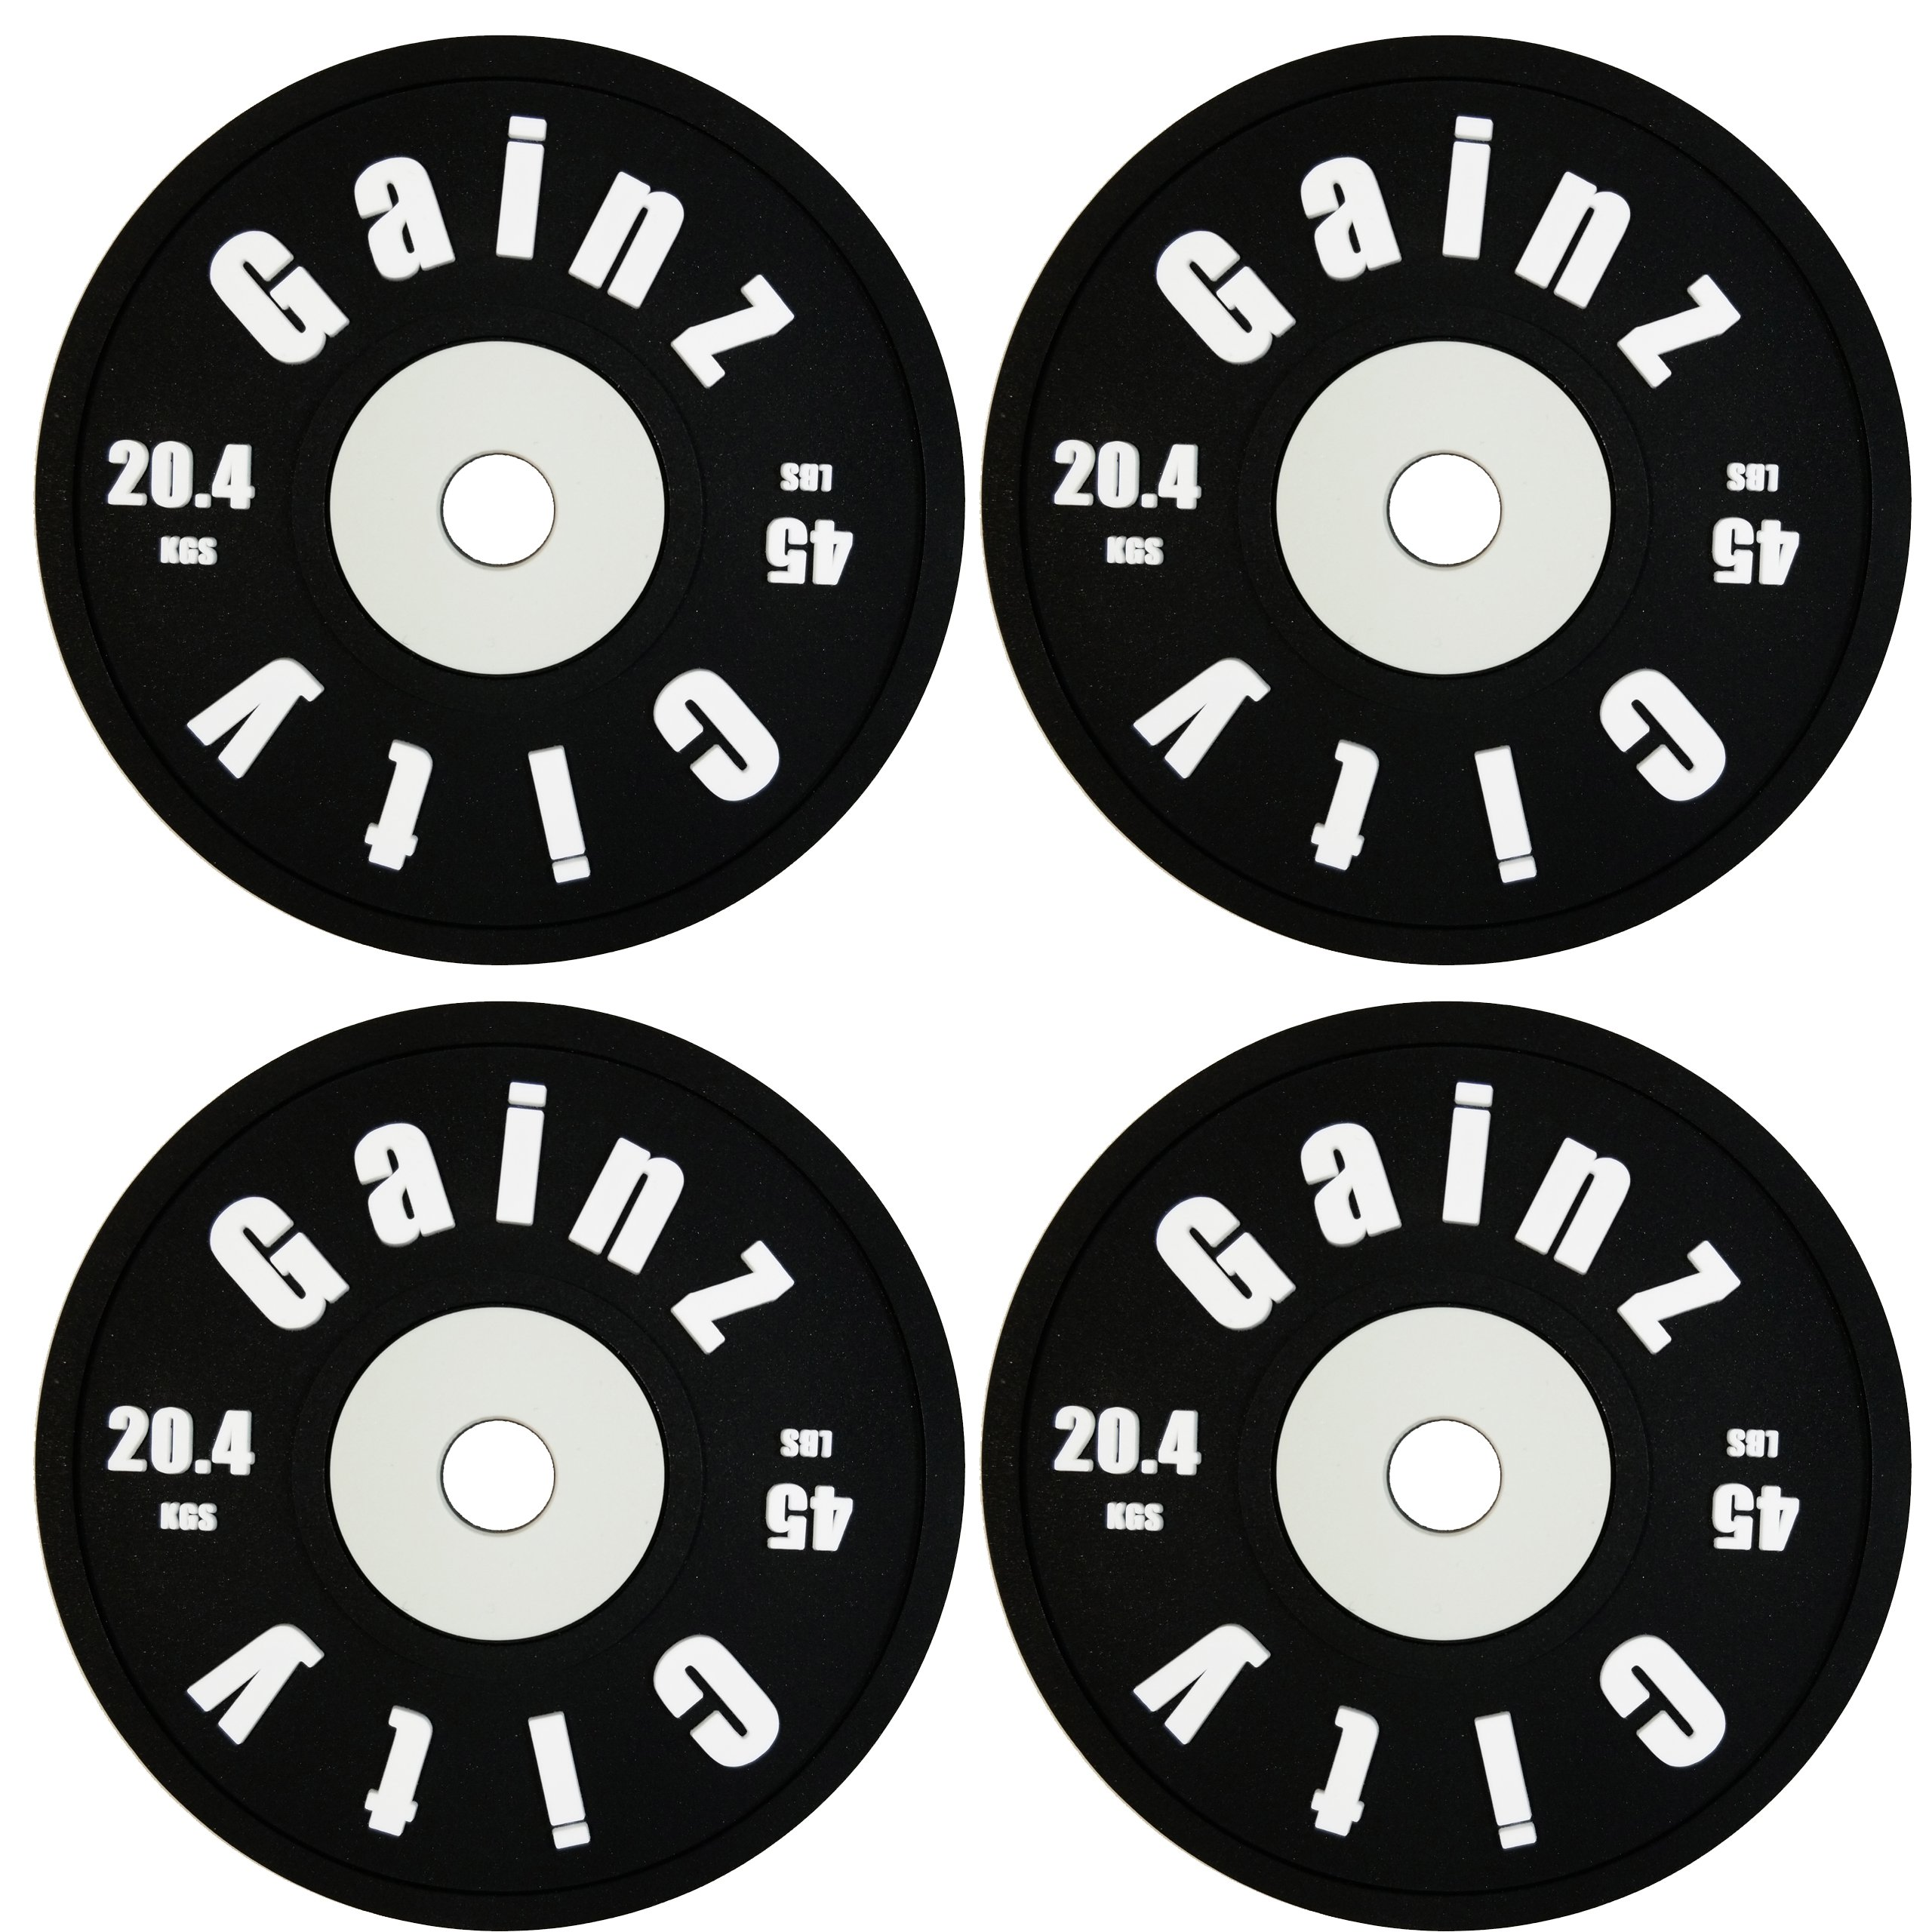 GainzCity Weight Plate Coaster Set - Set of 4 - Non Slip Silicone Drink Coasters- Perfect for Fitness Junkies, Gym Rats, Bodybuilders, and Lifters